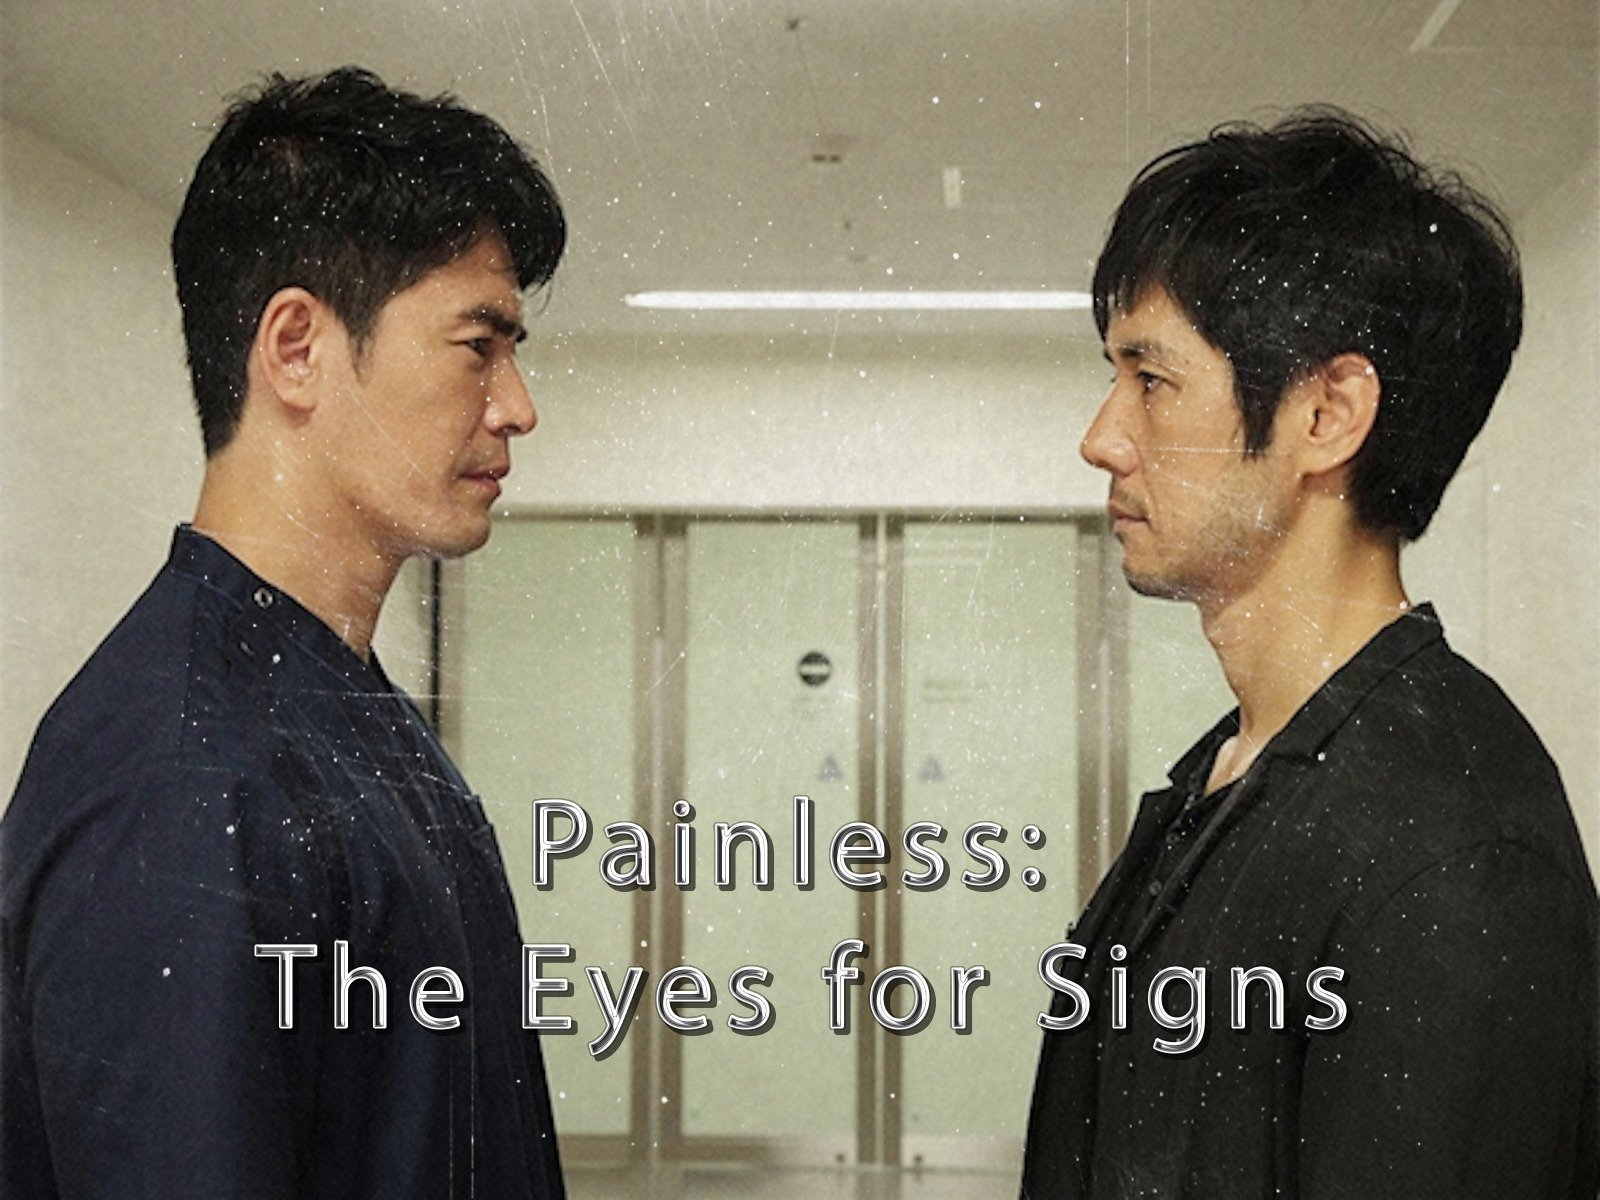 Painless: The Eyes for Signs - Season 1